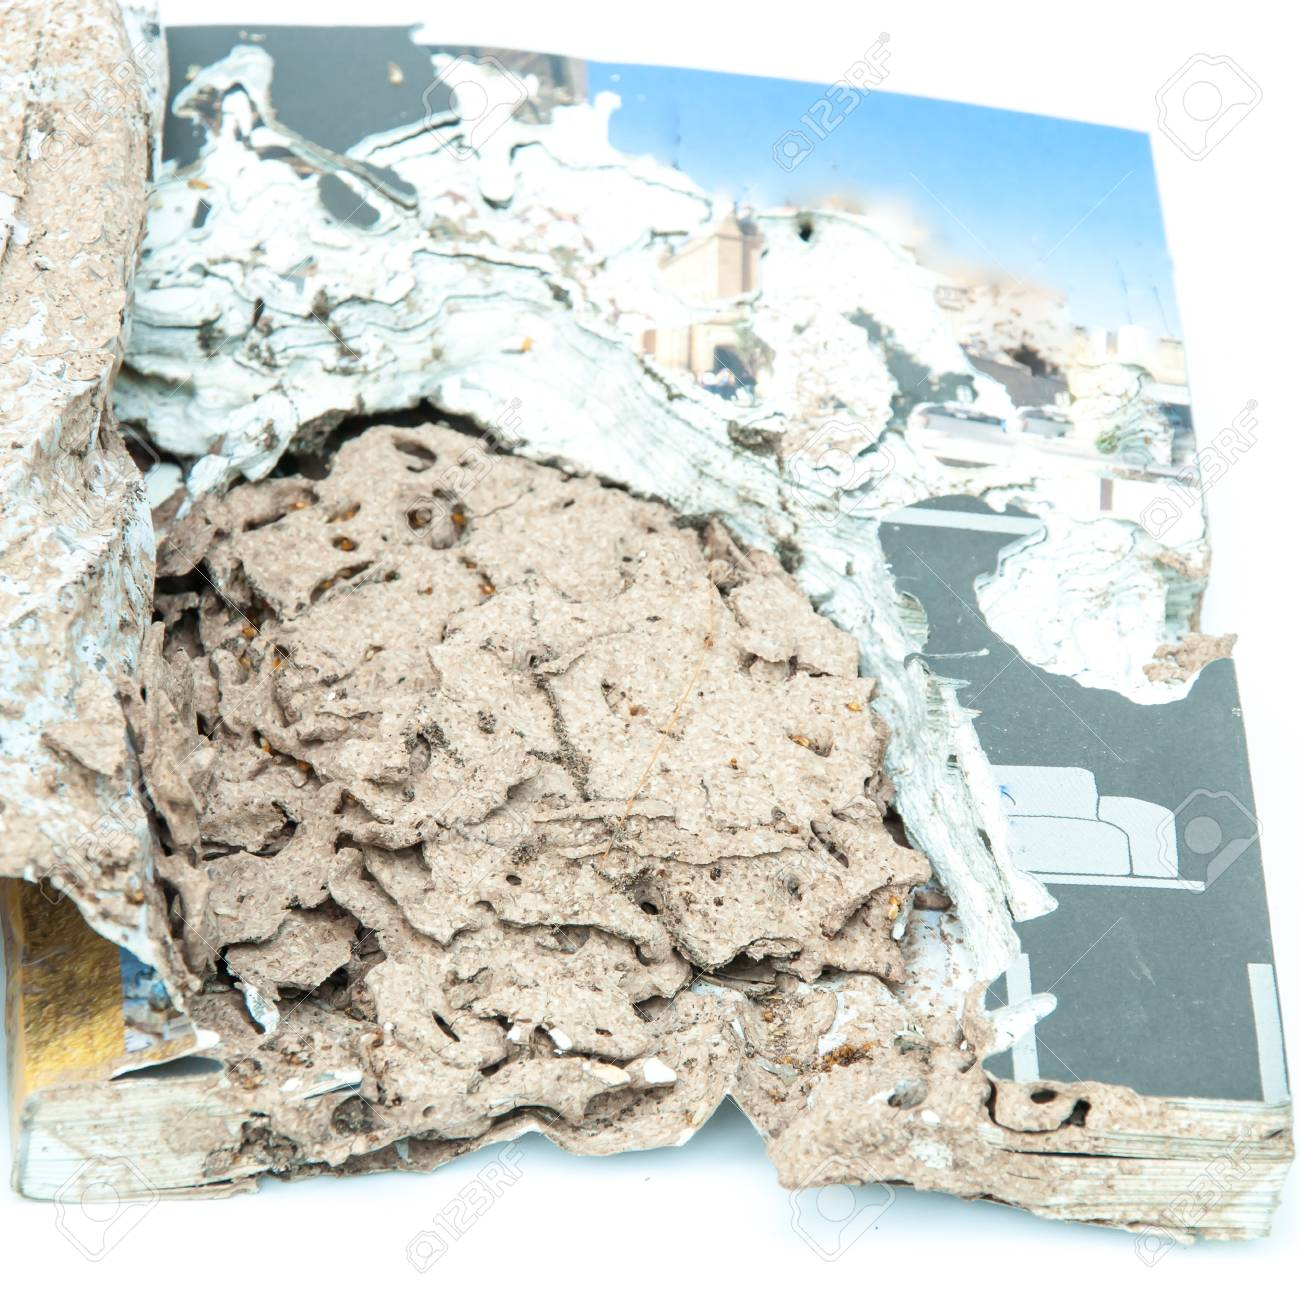 Close up damaged paper eaten by termite - 48659572